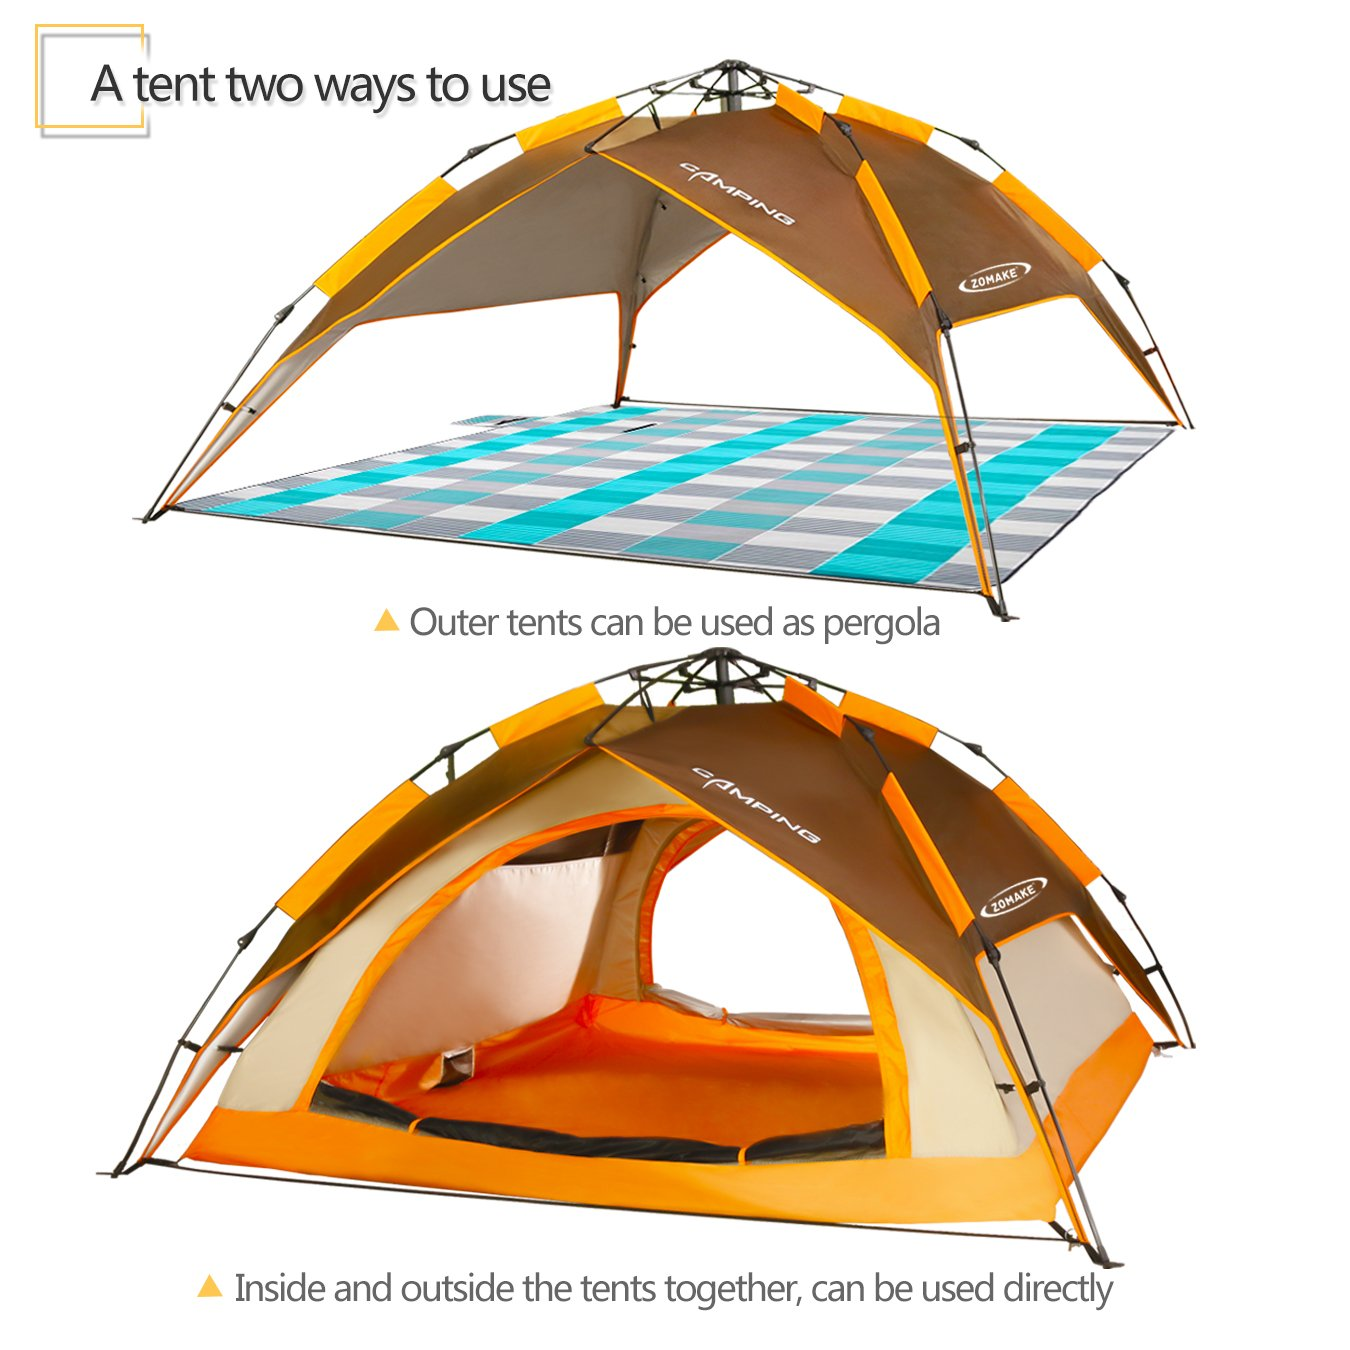 6b0d9c6f0699 ZOMAKE Dome Tent for Camping 3 4 Person - Waterproof Instant Backpacking  Tent, Automatic Hydraulic Pop Up Tent with Easy Setup, Carry Bag Included